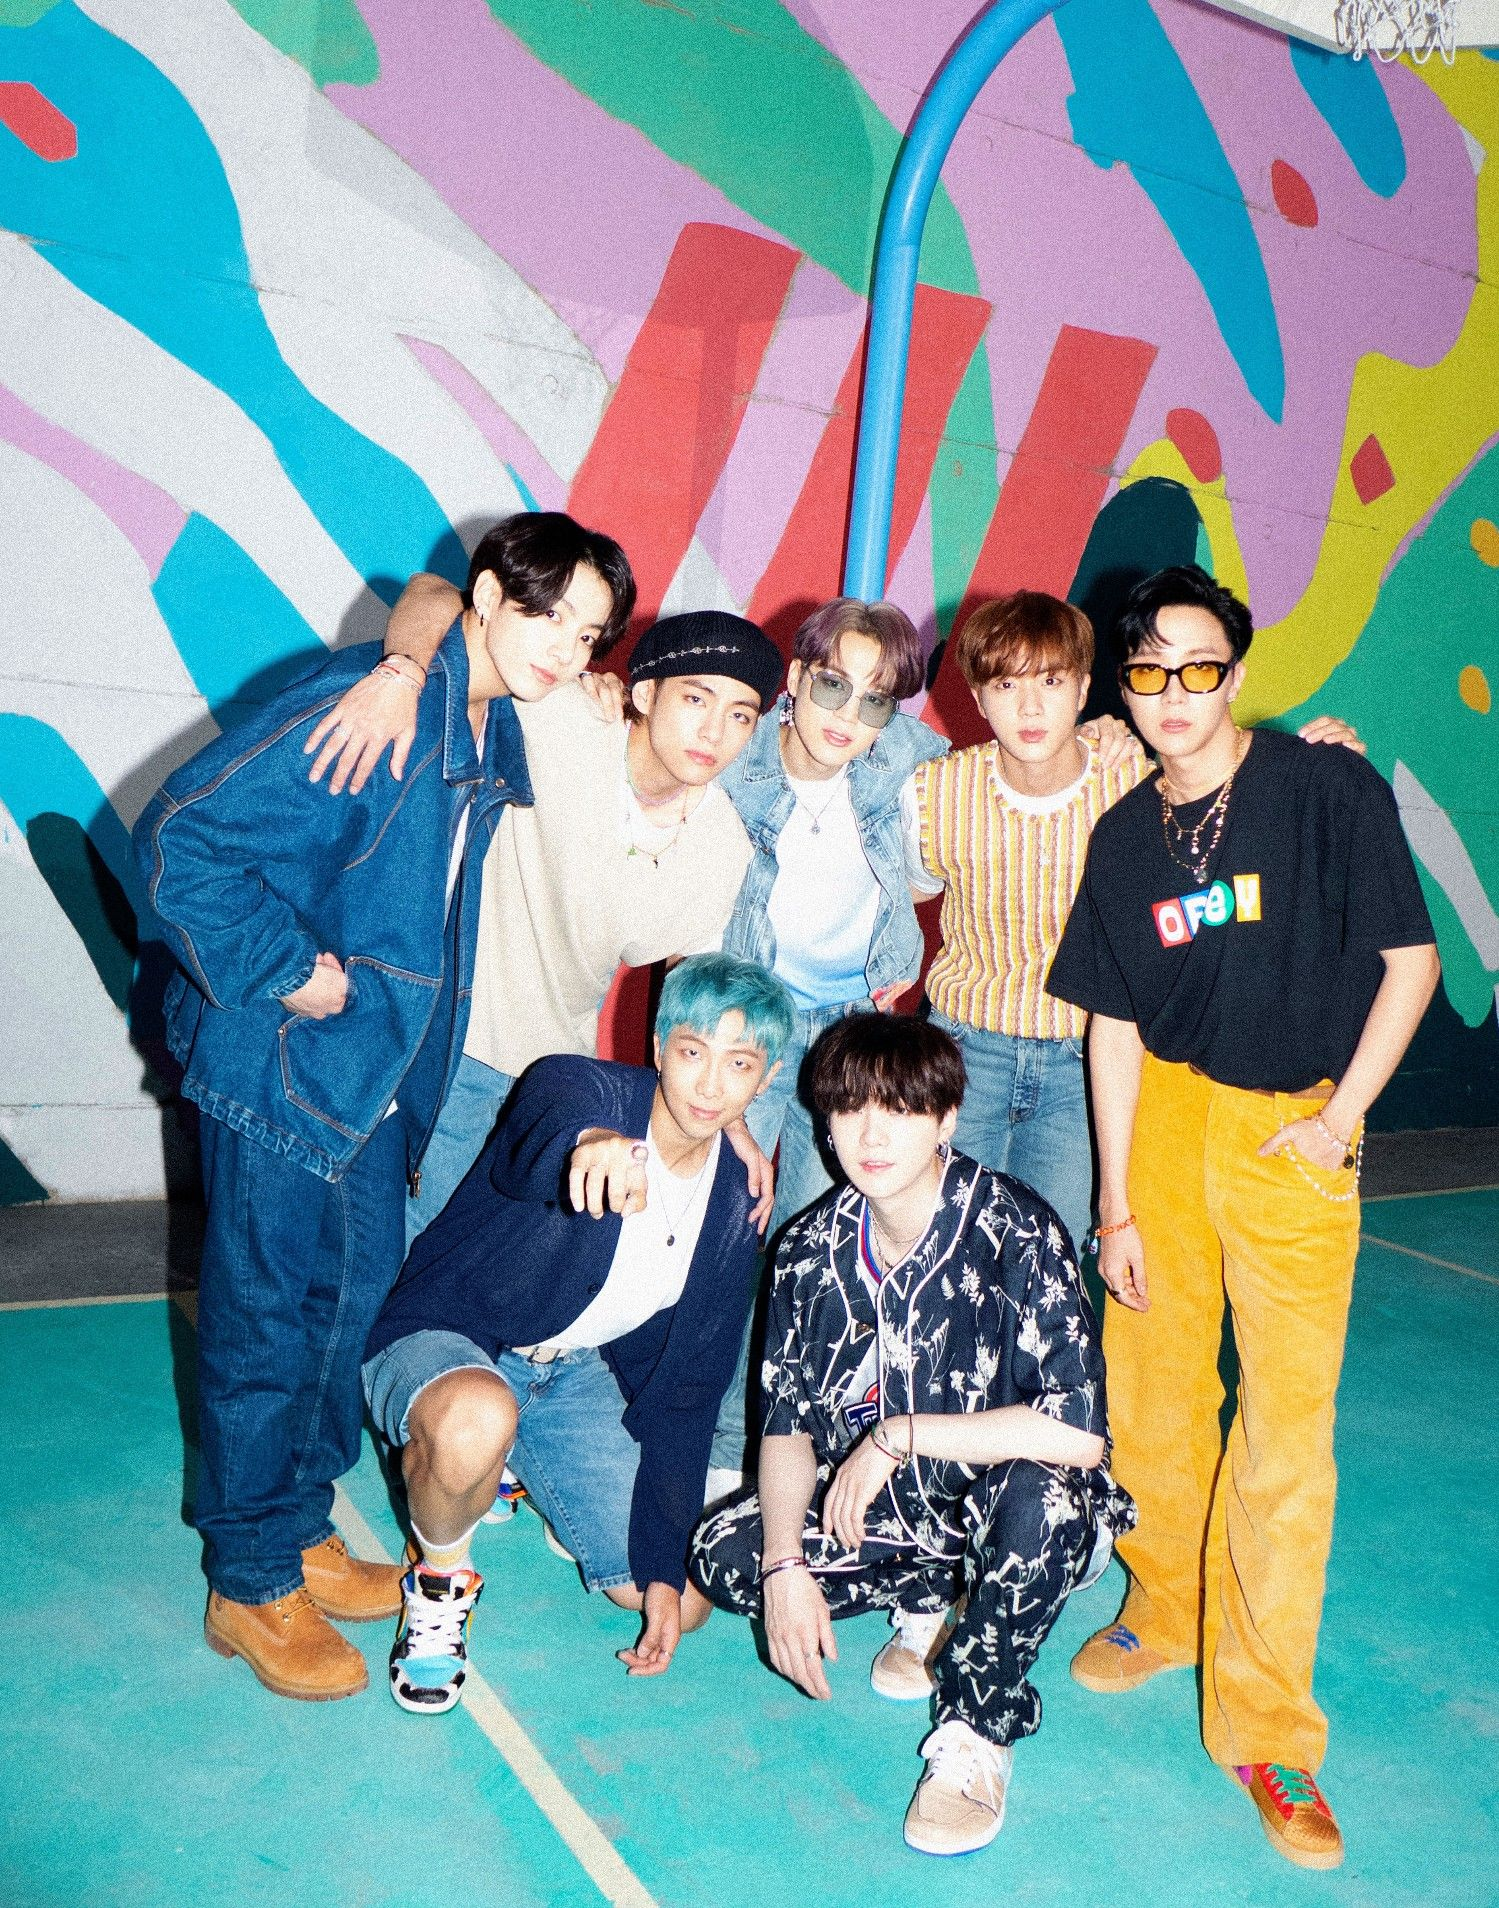 BTS Dynamite Special Photos (HD/HQ) in 2020 | Photoshoot ...